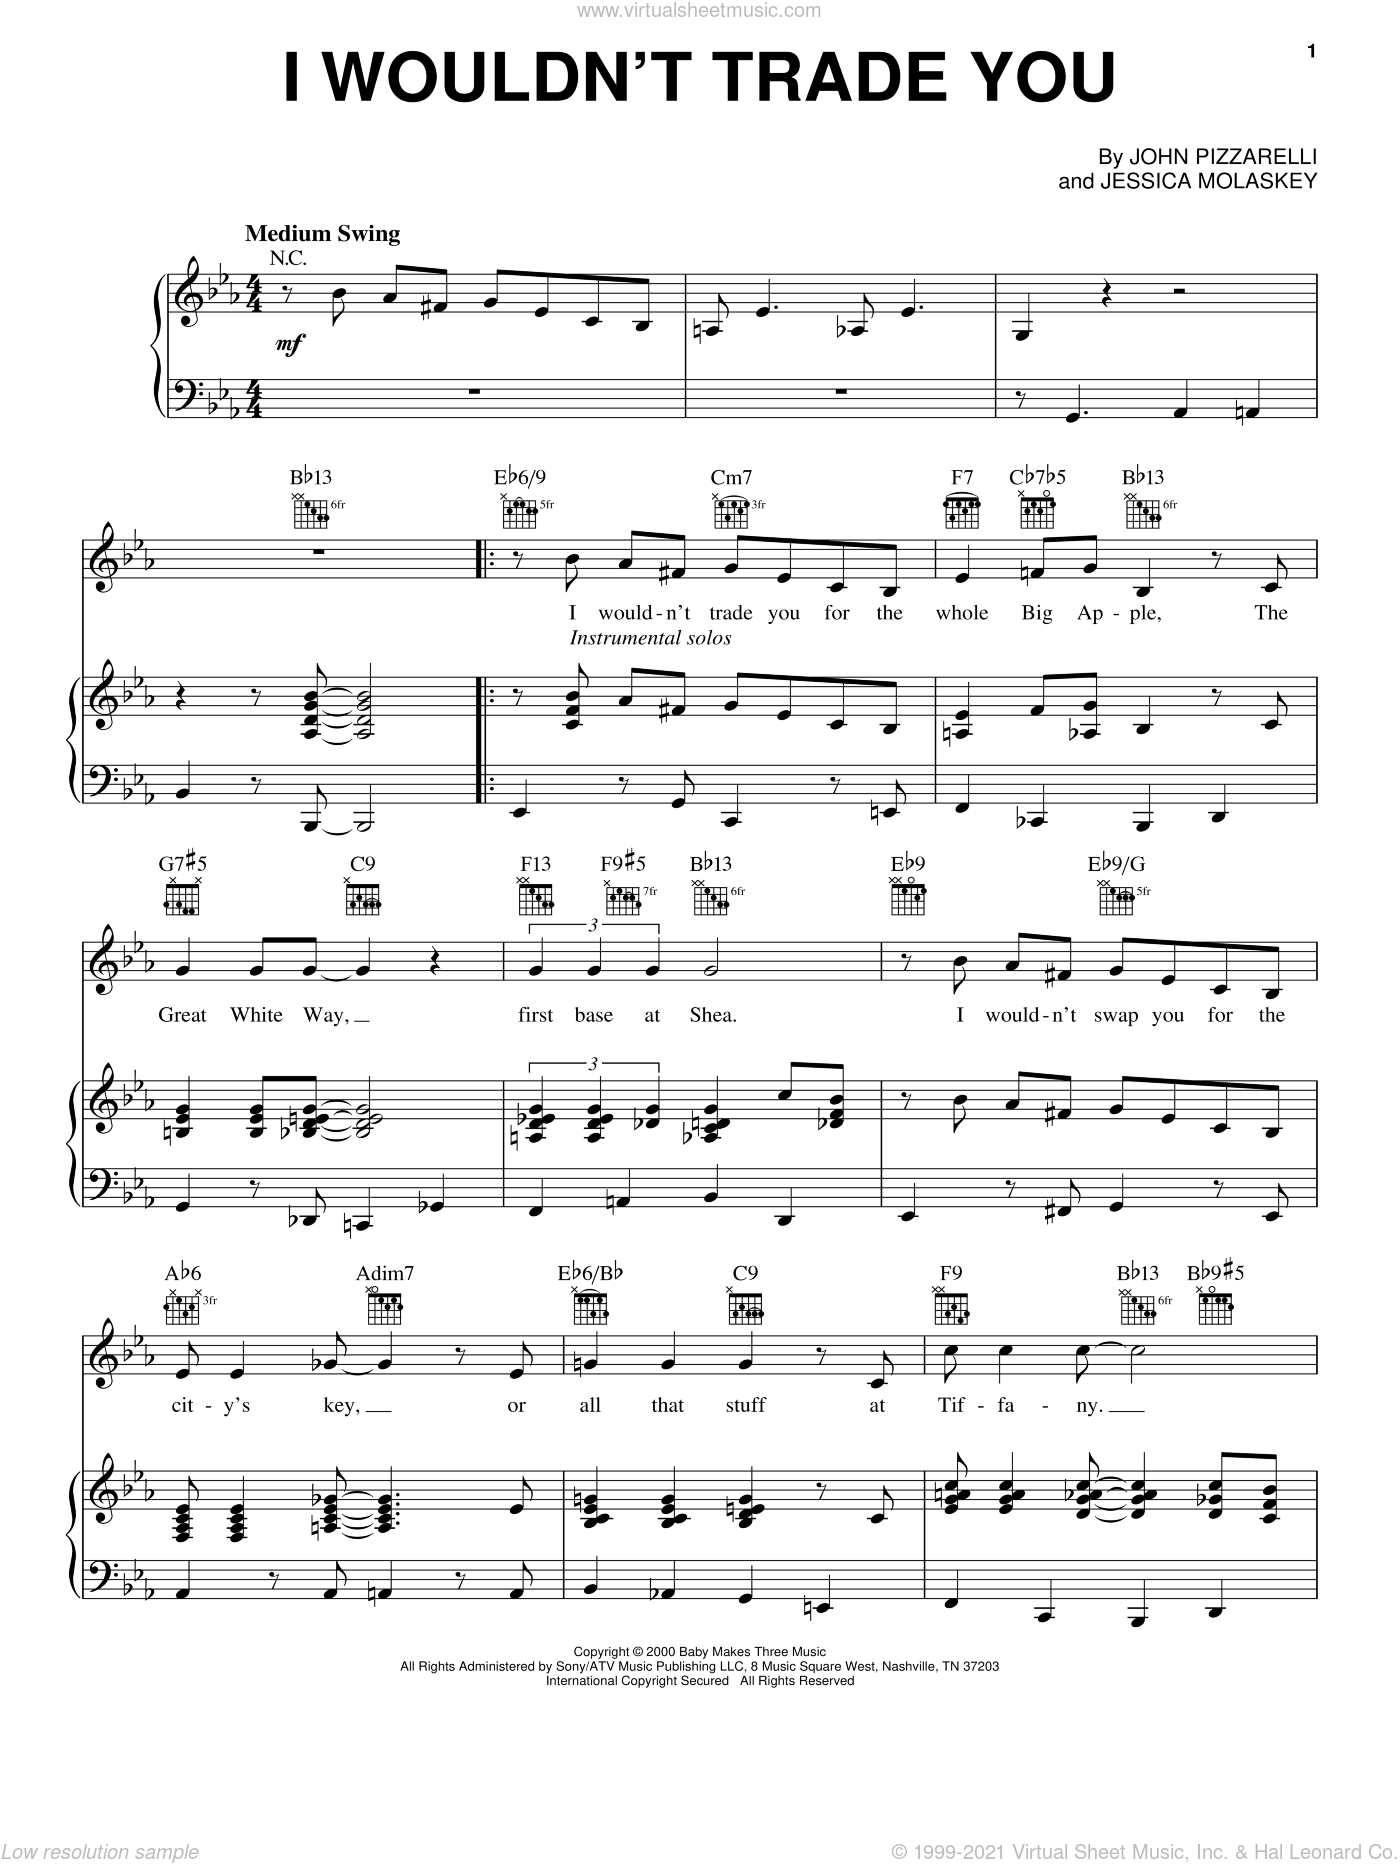 I Wouldn't Trade You sheet music for voice, piano or guitar by Jessica Molaskey